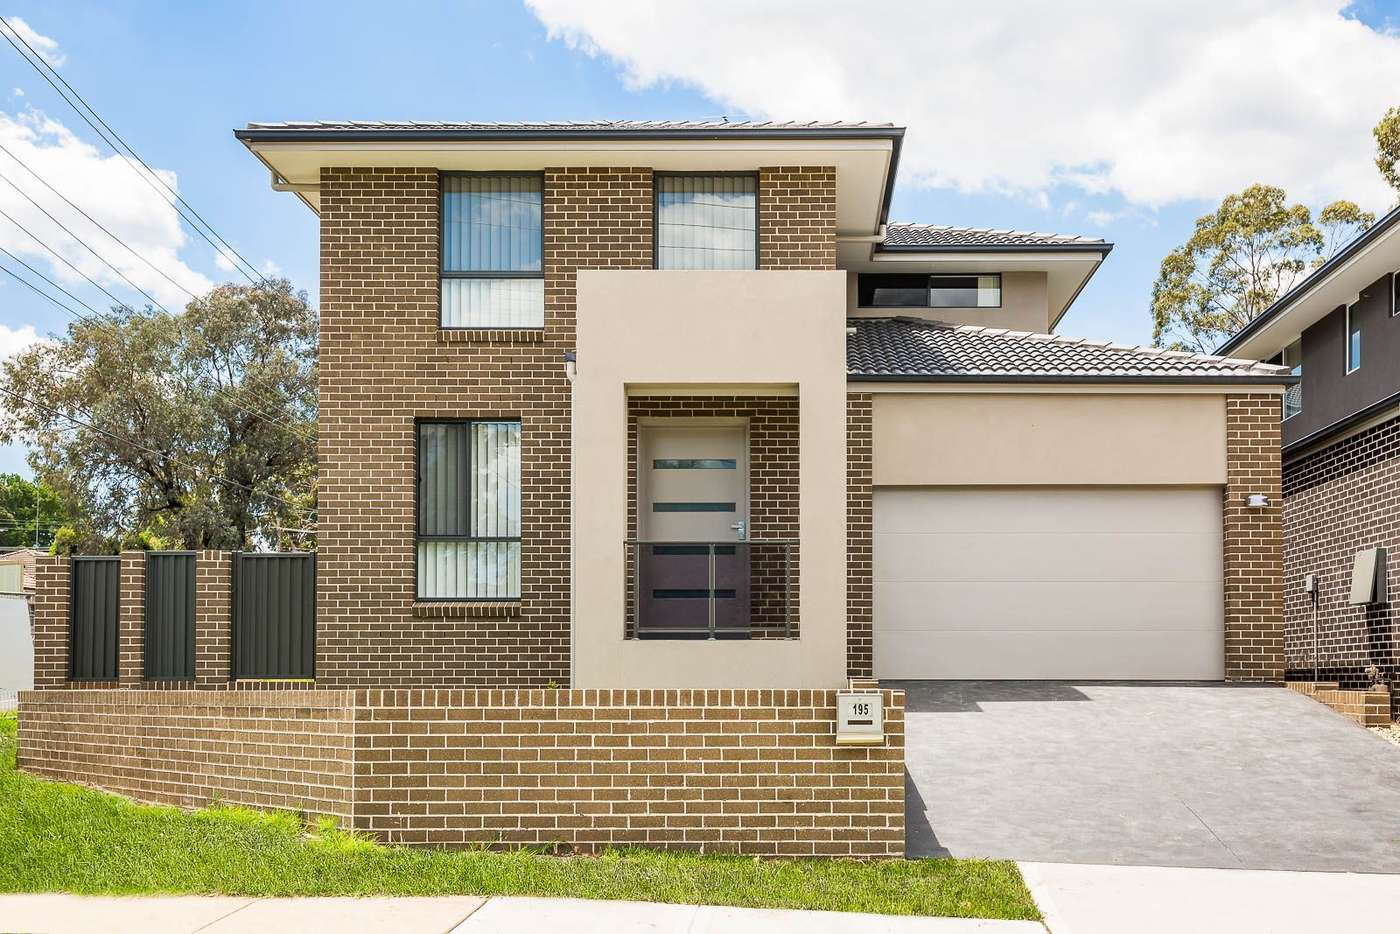 Main view of Homely house listing, 197 Stephen Street, Blacktown, NSW 2148